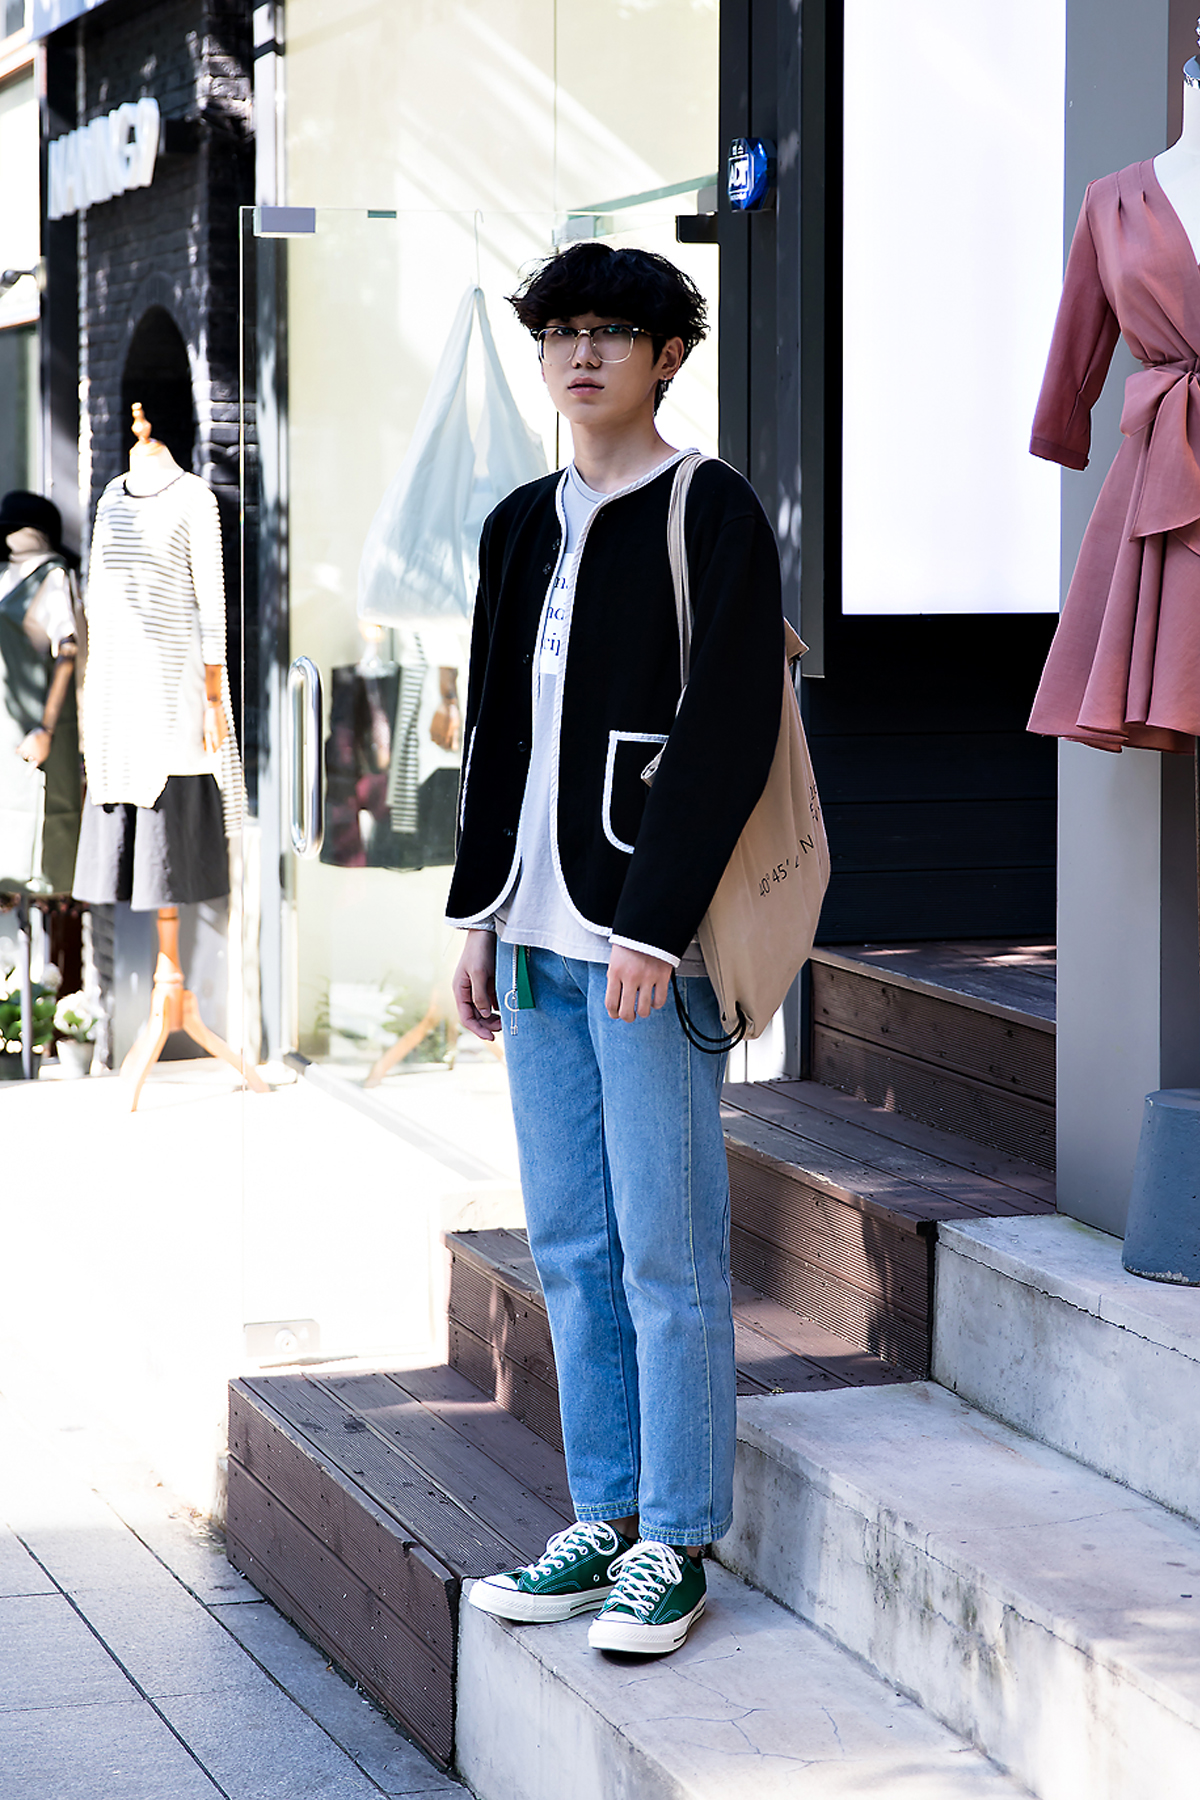 Yoo Hanrim, Street Fashion 2017 in Seoul.jpg